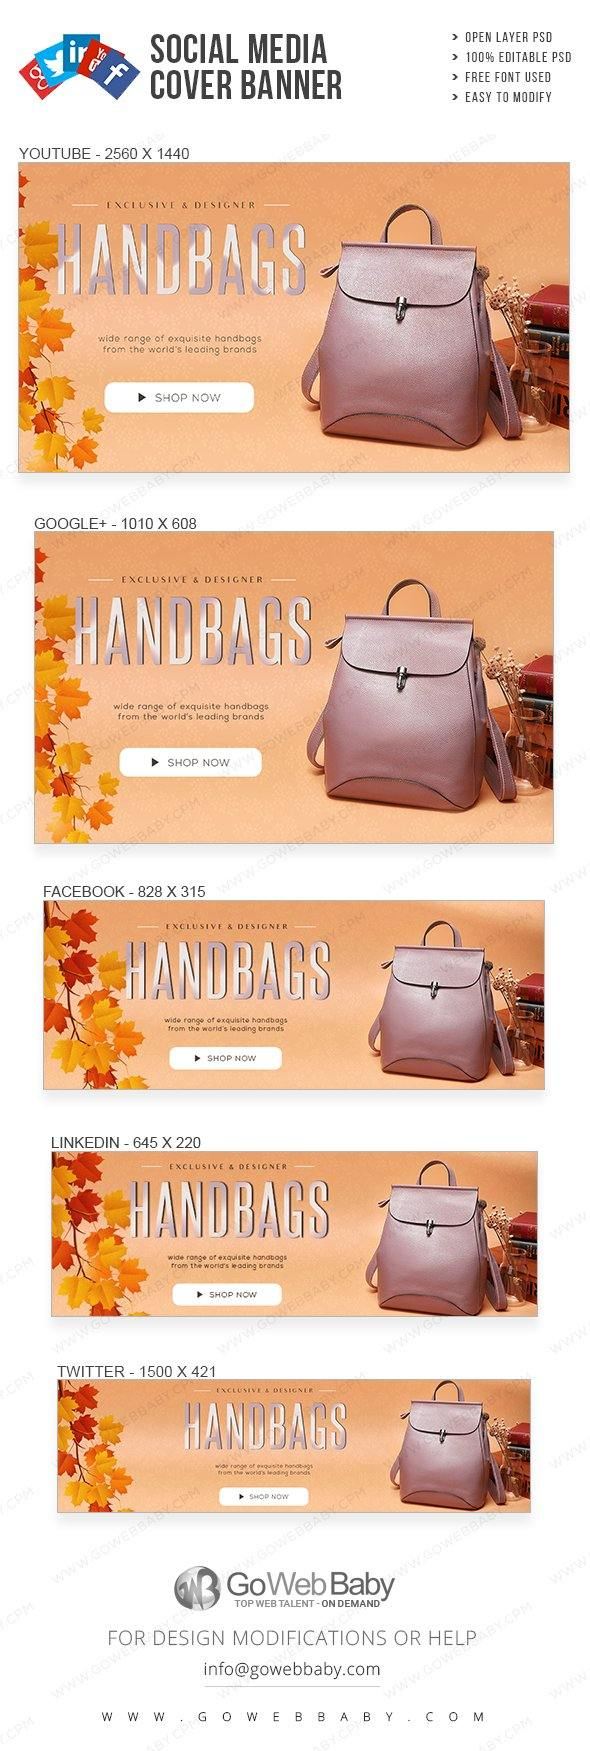 Social Media Cover Banner - Designer Handbags For Website Marketing